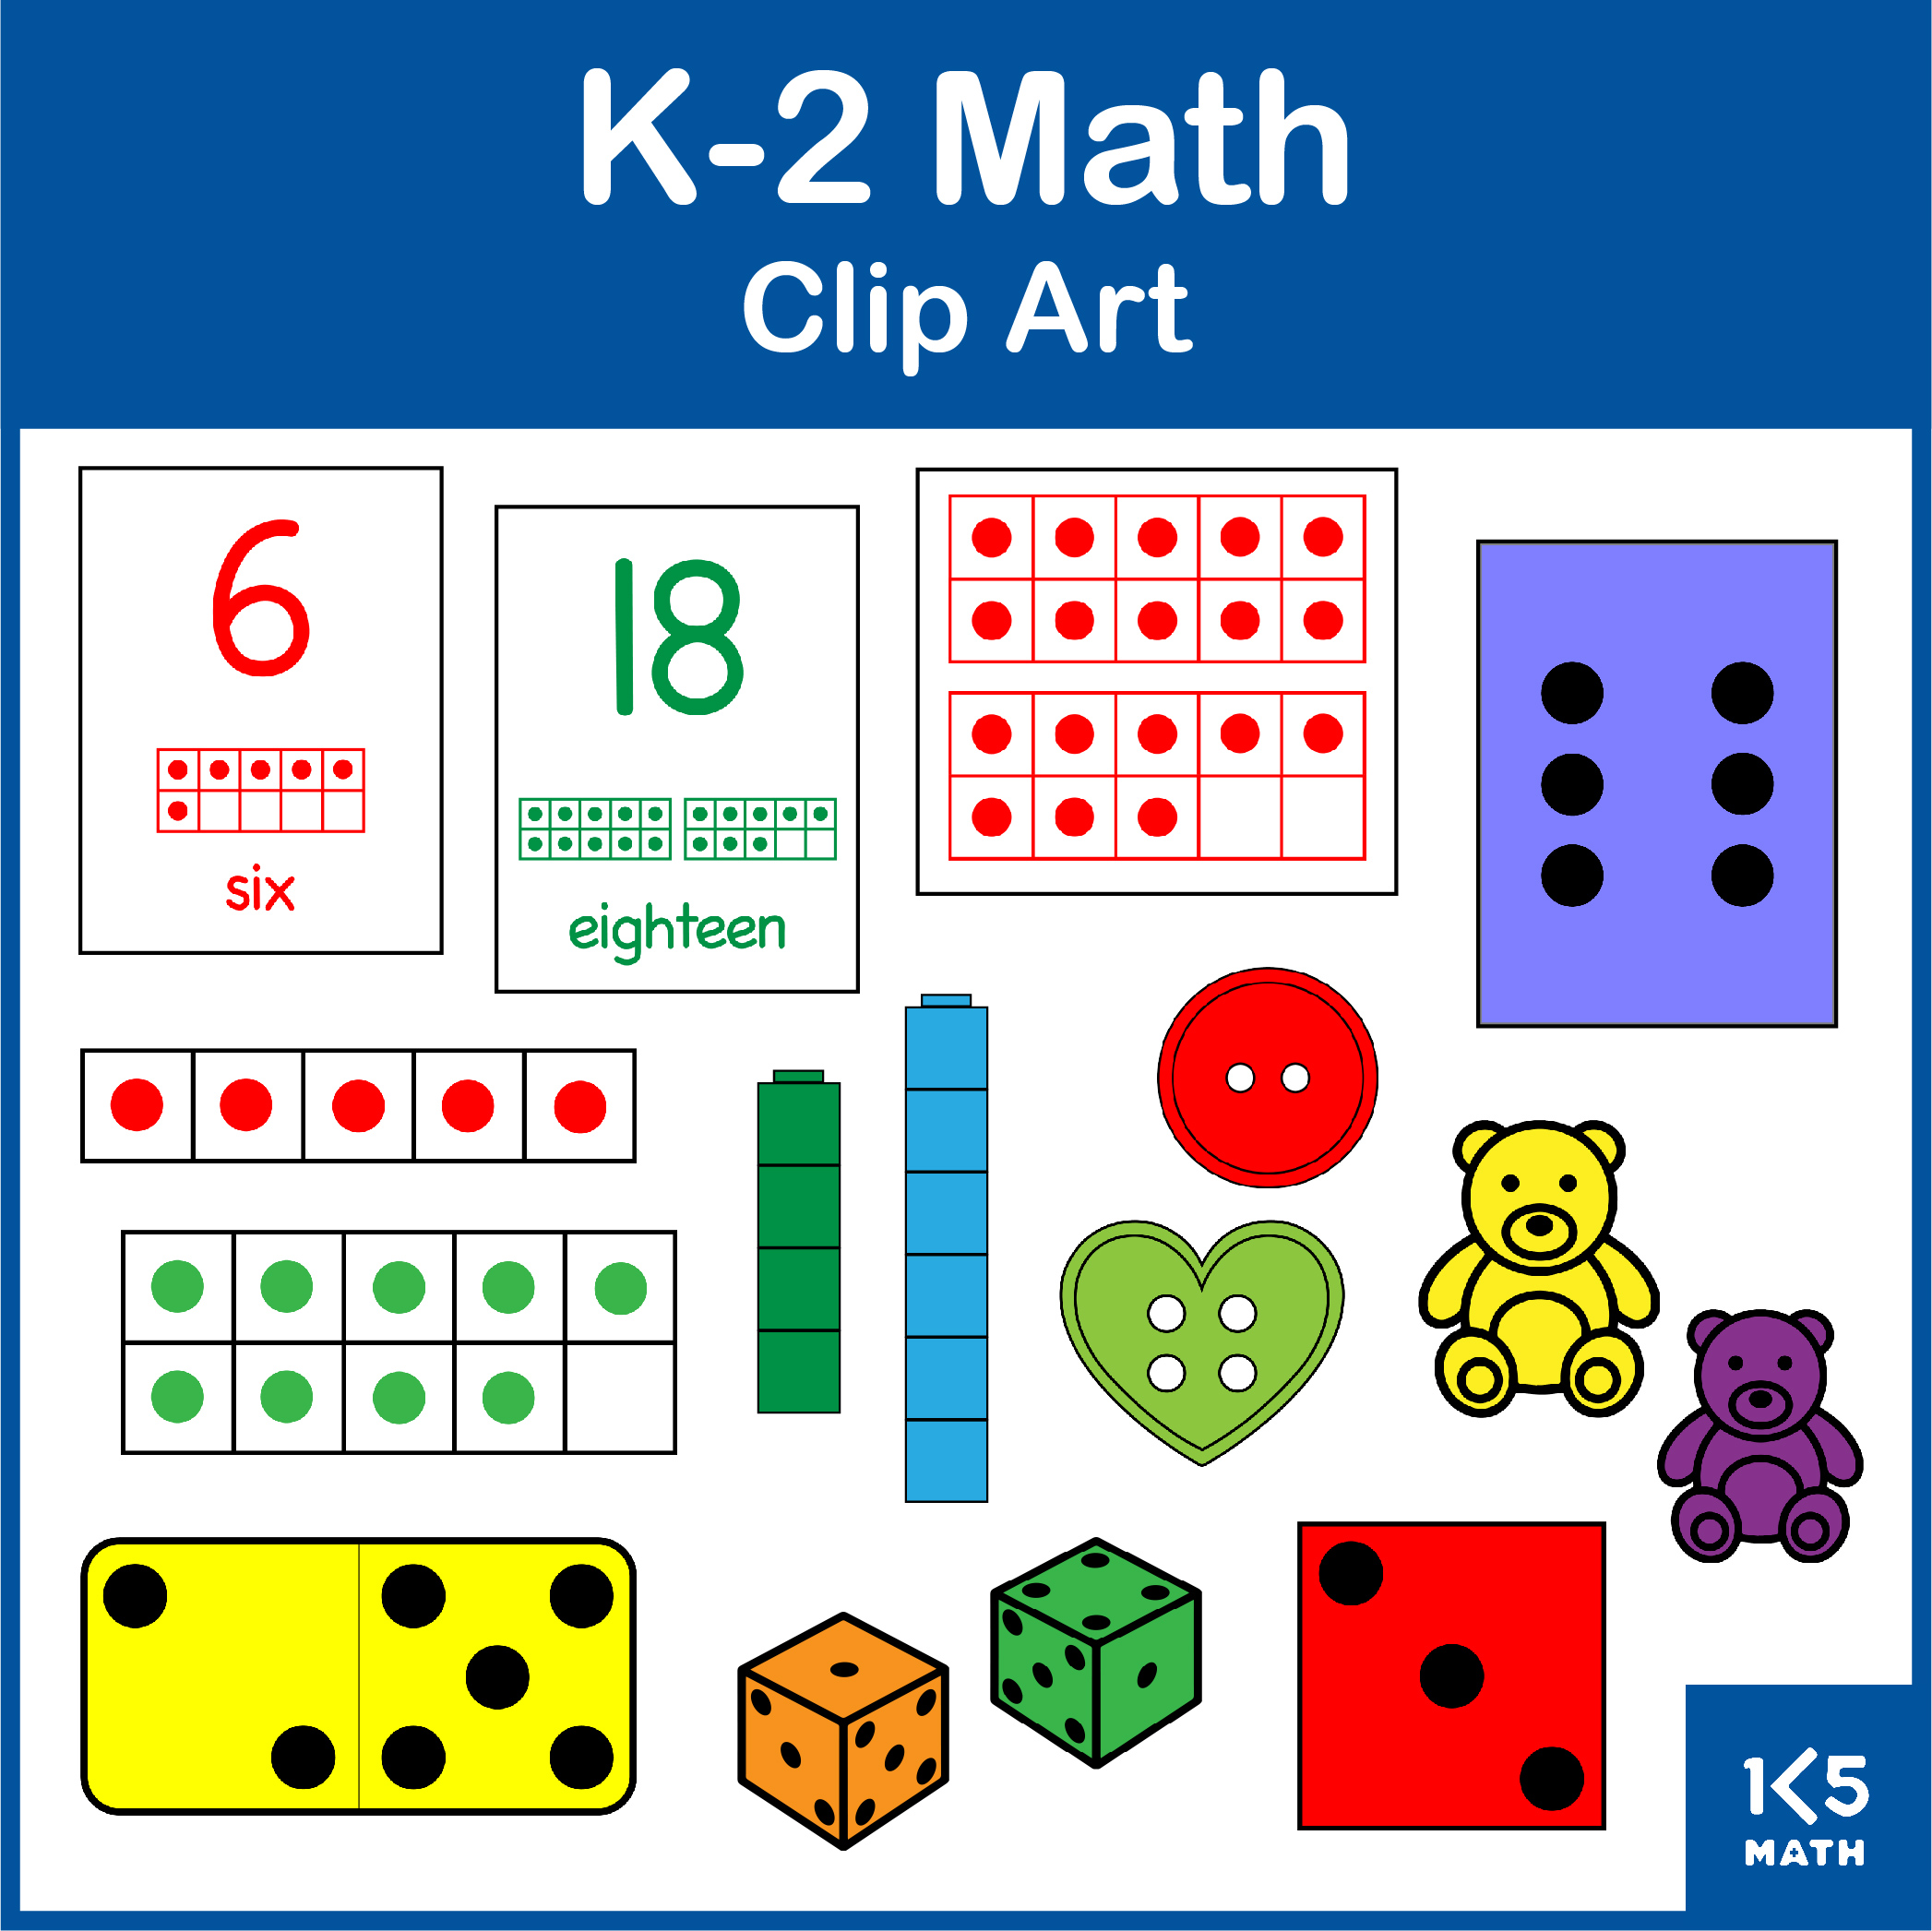 K-2 Math Clip Art Bundle contains over 1500 images.